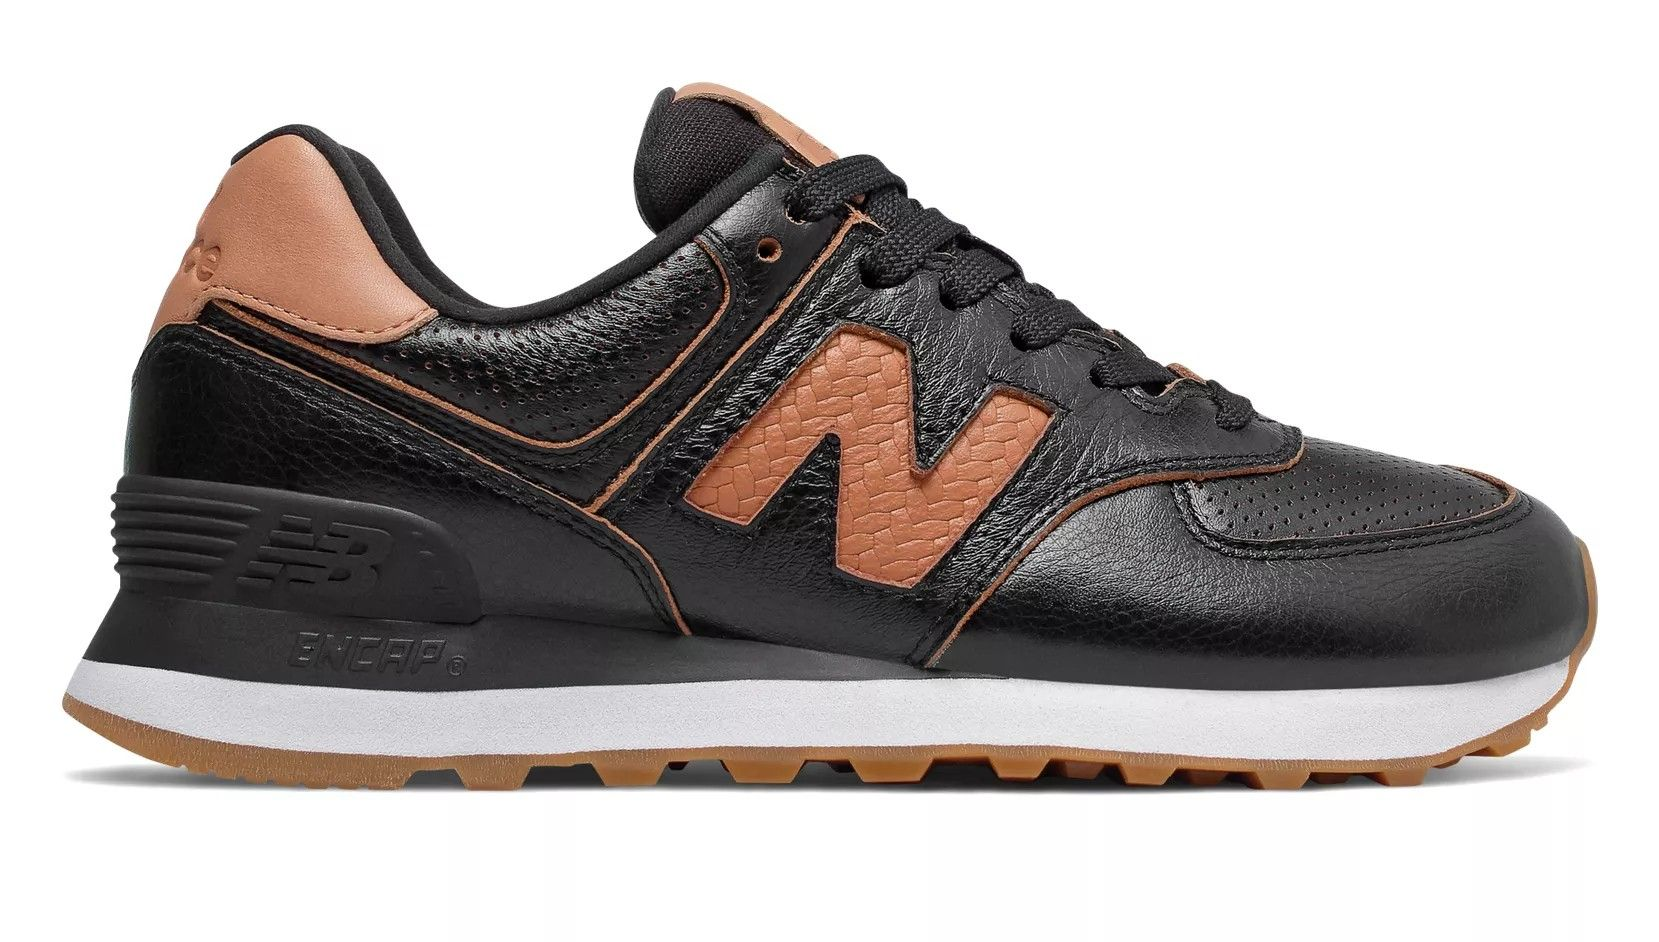 ML_WL574V2 New Balance